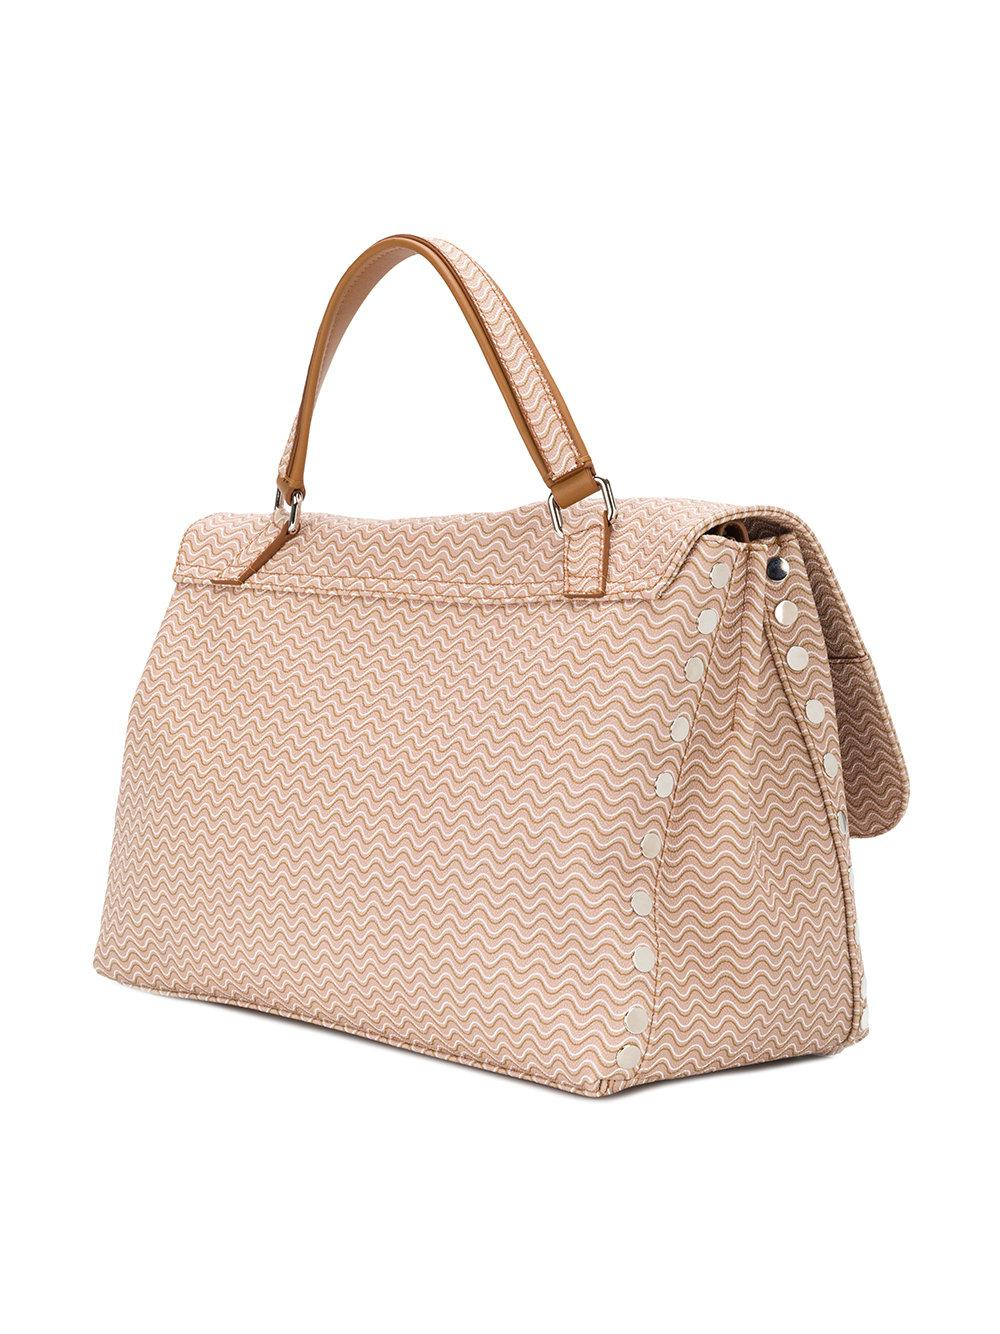 printed twist-lock tote - Nude & Neutrals Zanellato Red Pre Order Eastbay Outlet Top Quality Sale Best Sale Professional Sale Online Cheap Sale Discount TlUKI